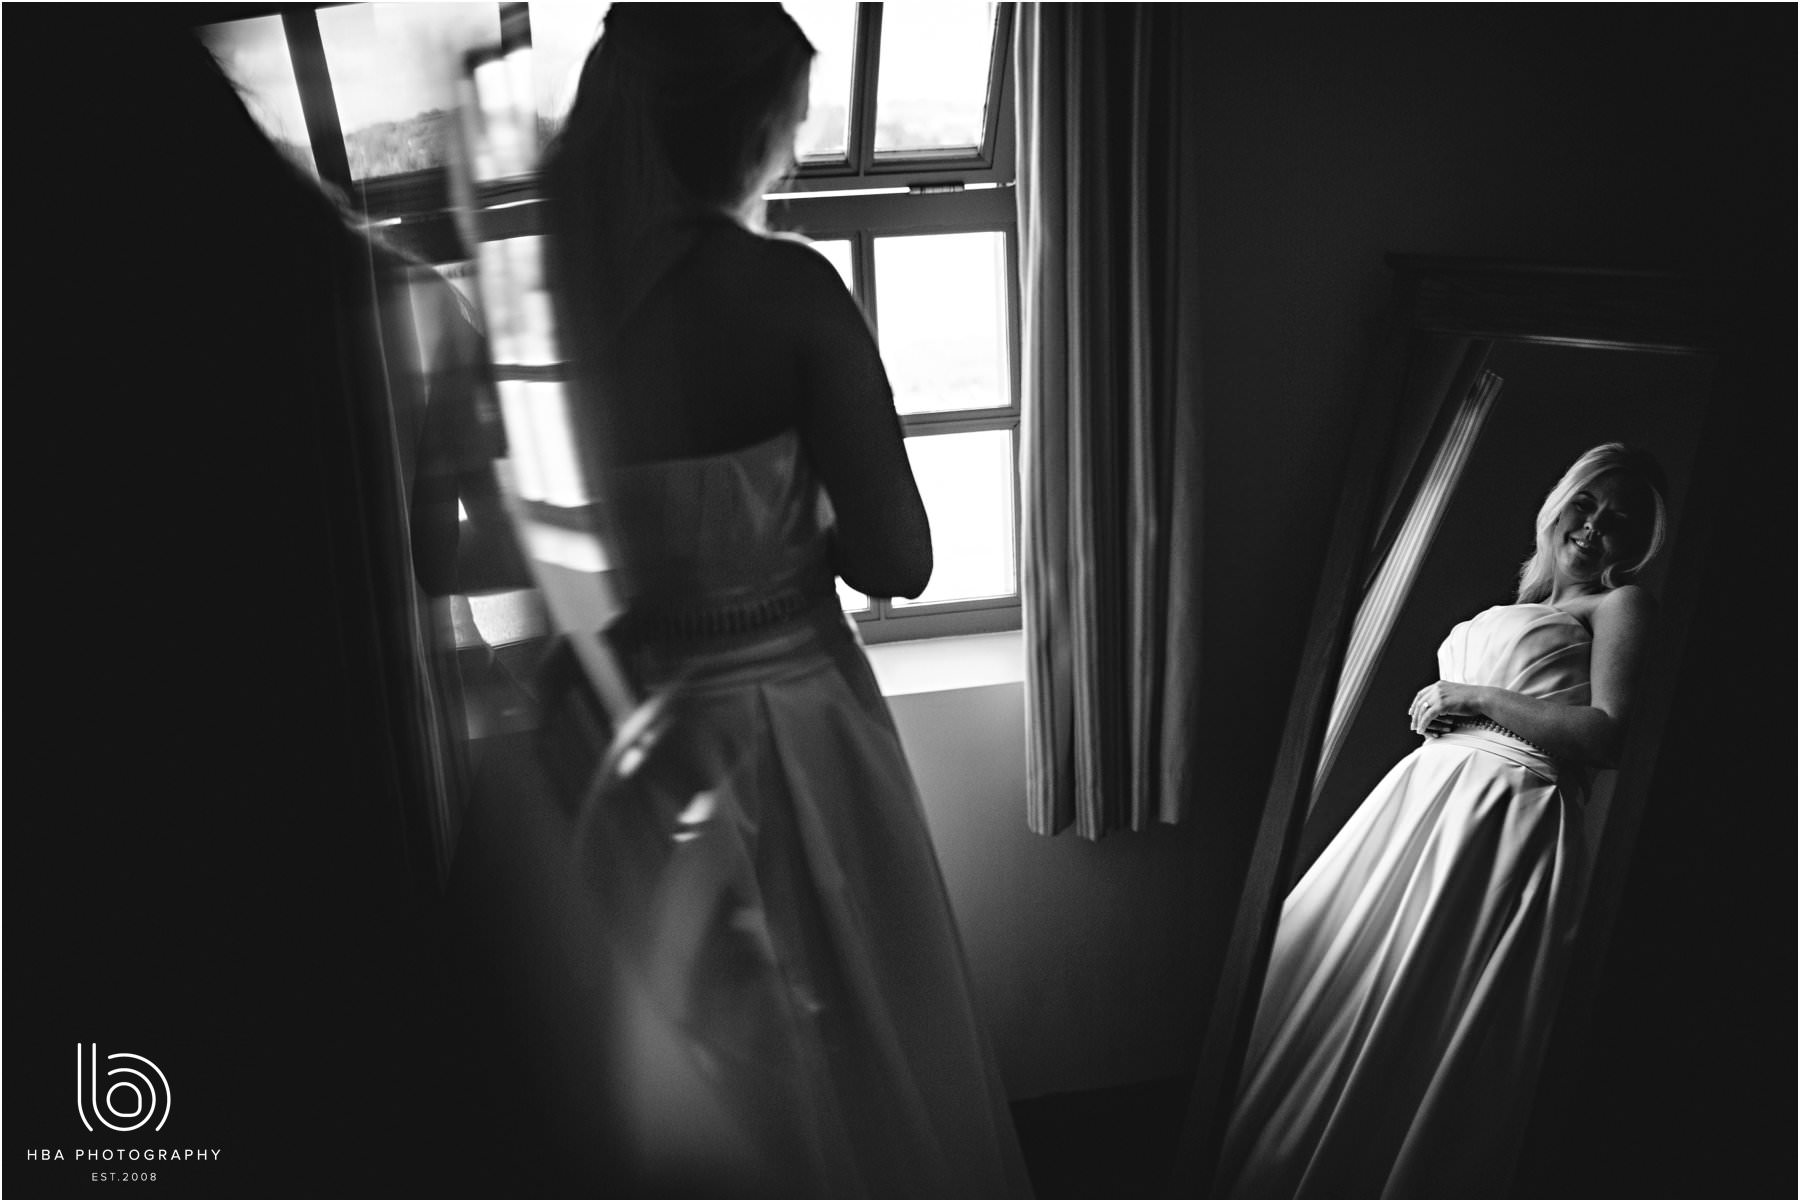 The bride looking out the window